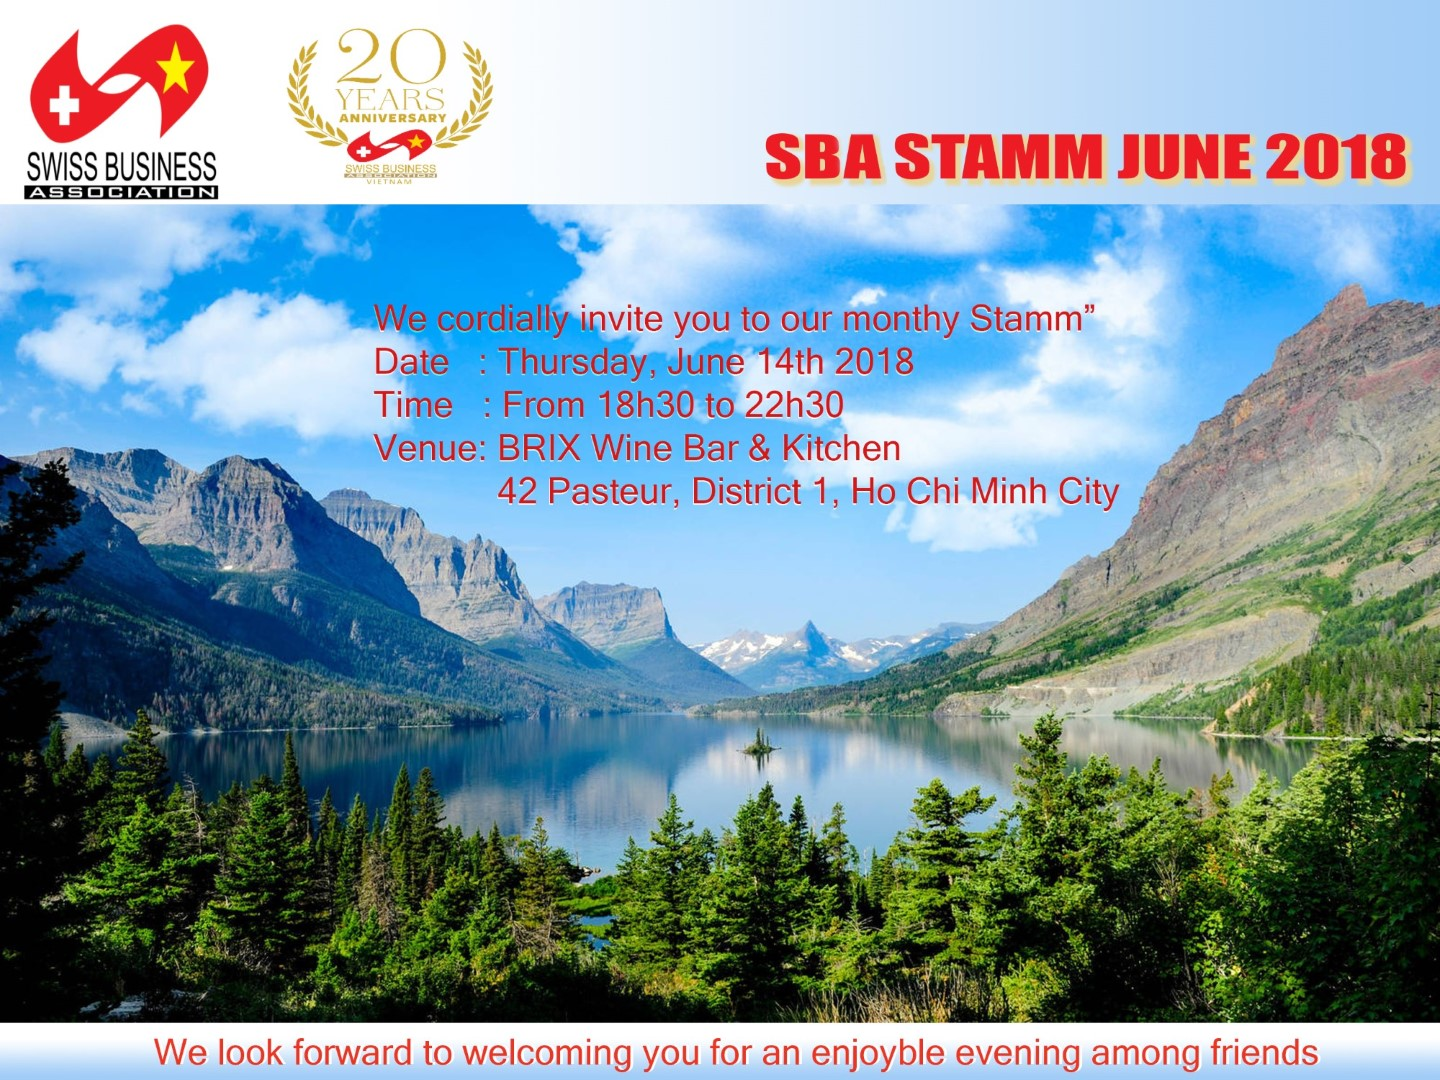 SBA Stamm of June - CEEC